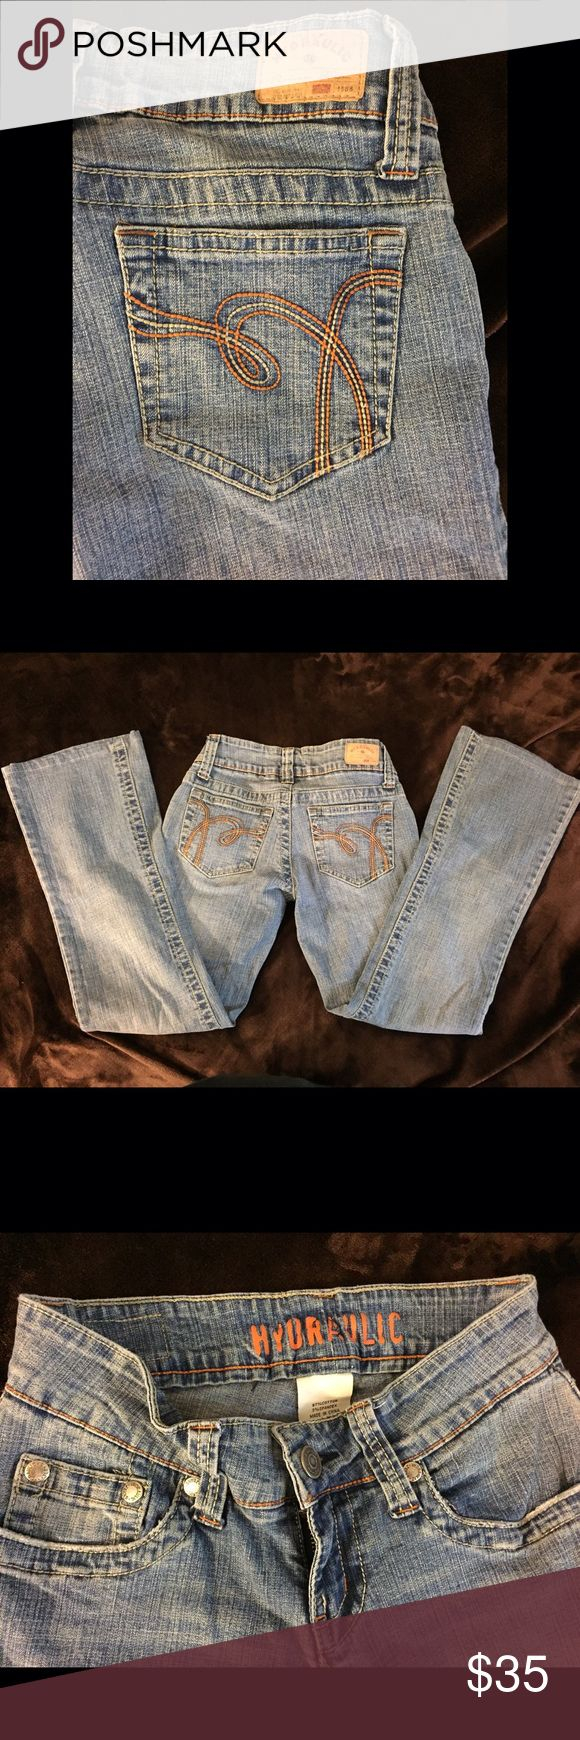 Hydraulic Jeans Size 1/2! Hydraulic Jeans Size 1/2!   Excellent like new condition. Length 33 inseam 26 1/2 Waist 13  Rise 6 leg 7 Hydraulic Jeans